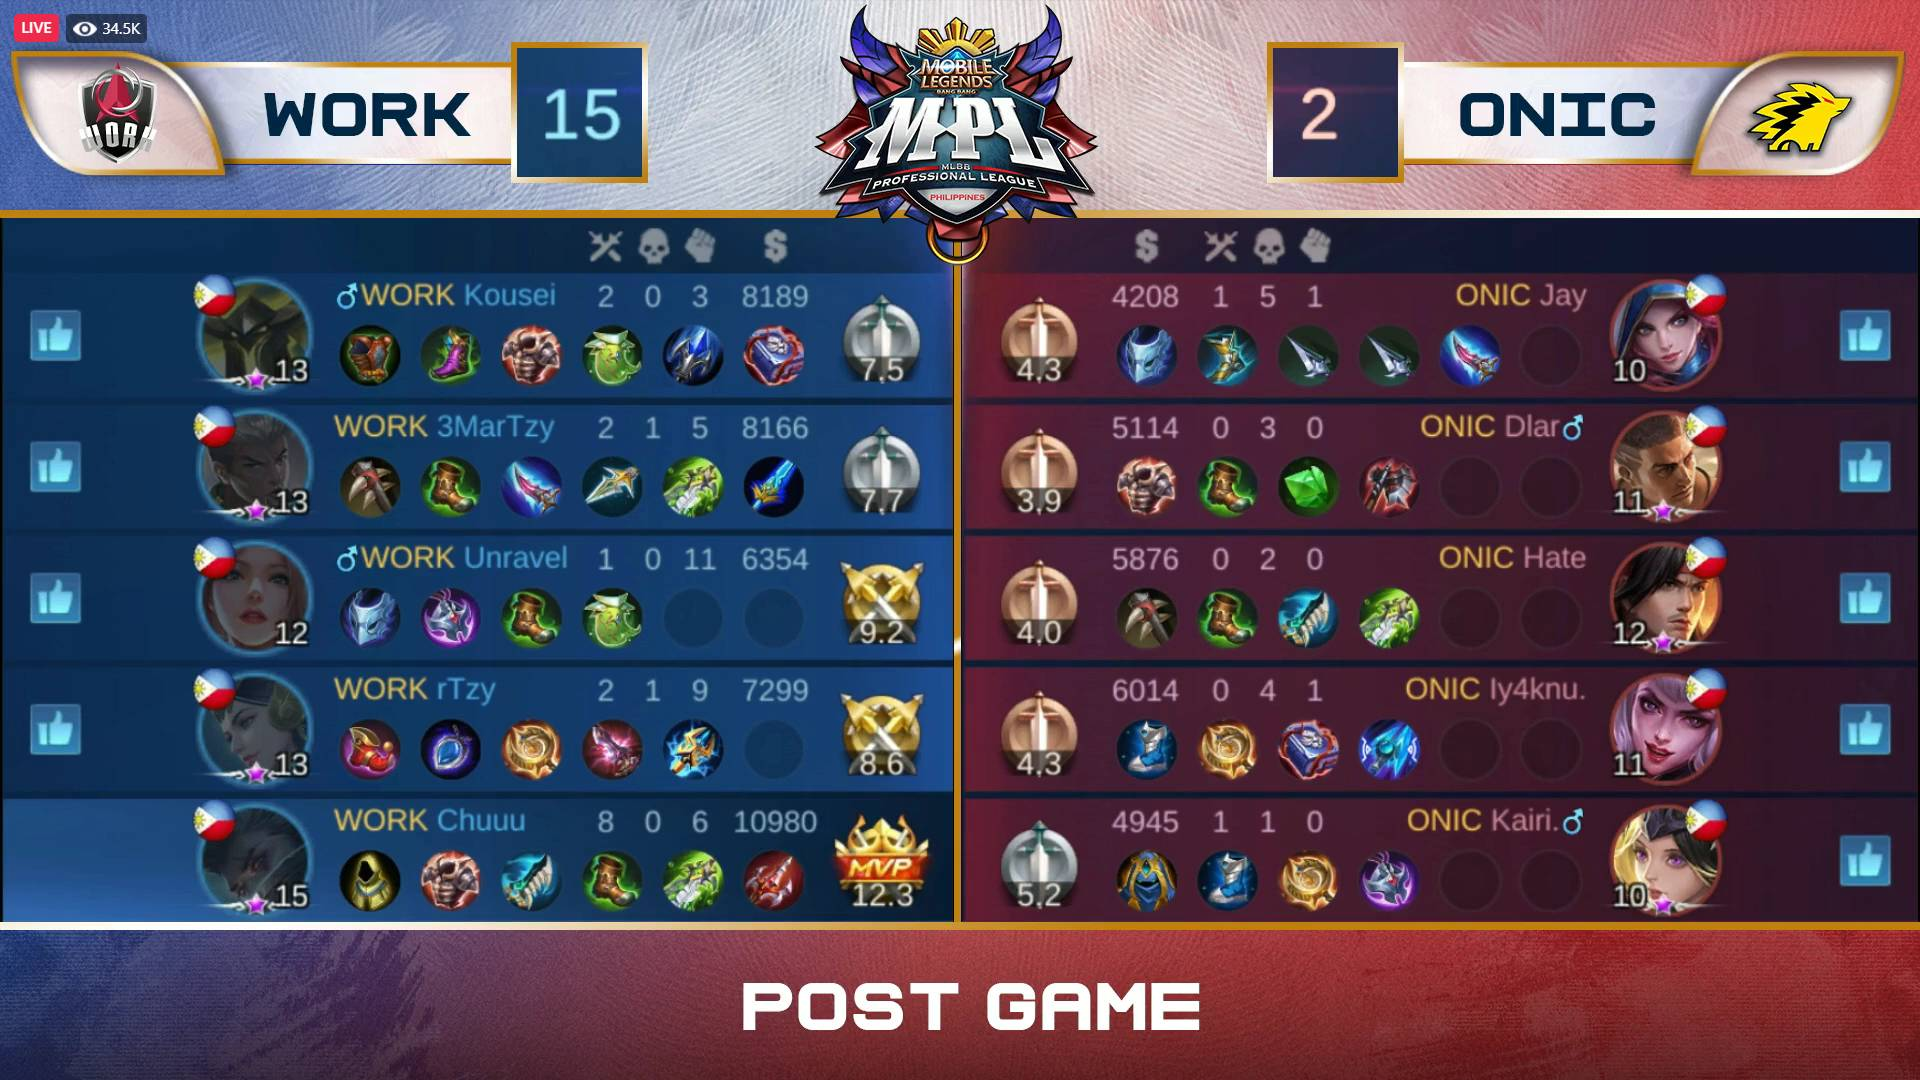 MPL-PH-7-Work-Auster-def-ONIC-Game-One Chuuu delivers in clutch as Work Auster stuns ONIC PH in MPL-PH ESports Mobile Legends MPL-PH News  - philippine sports news